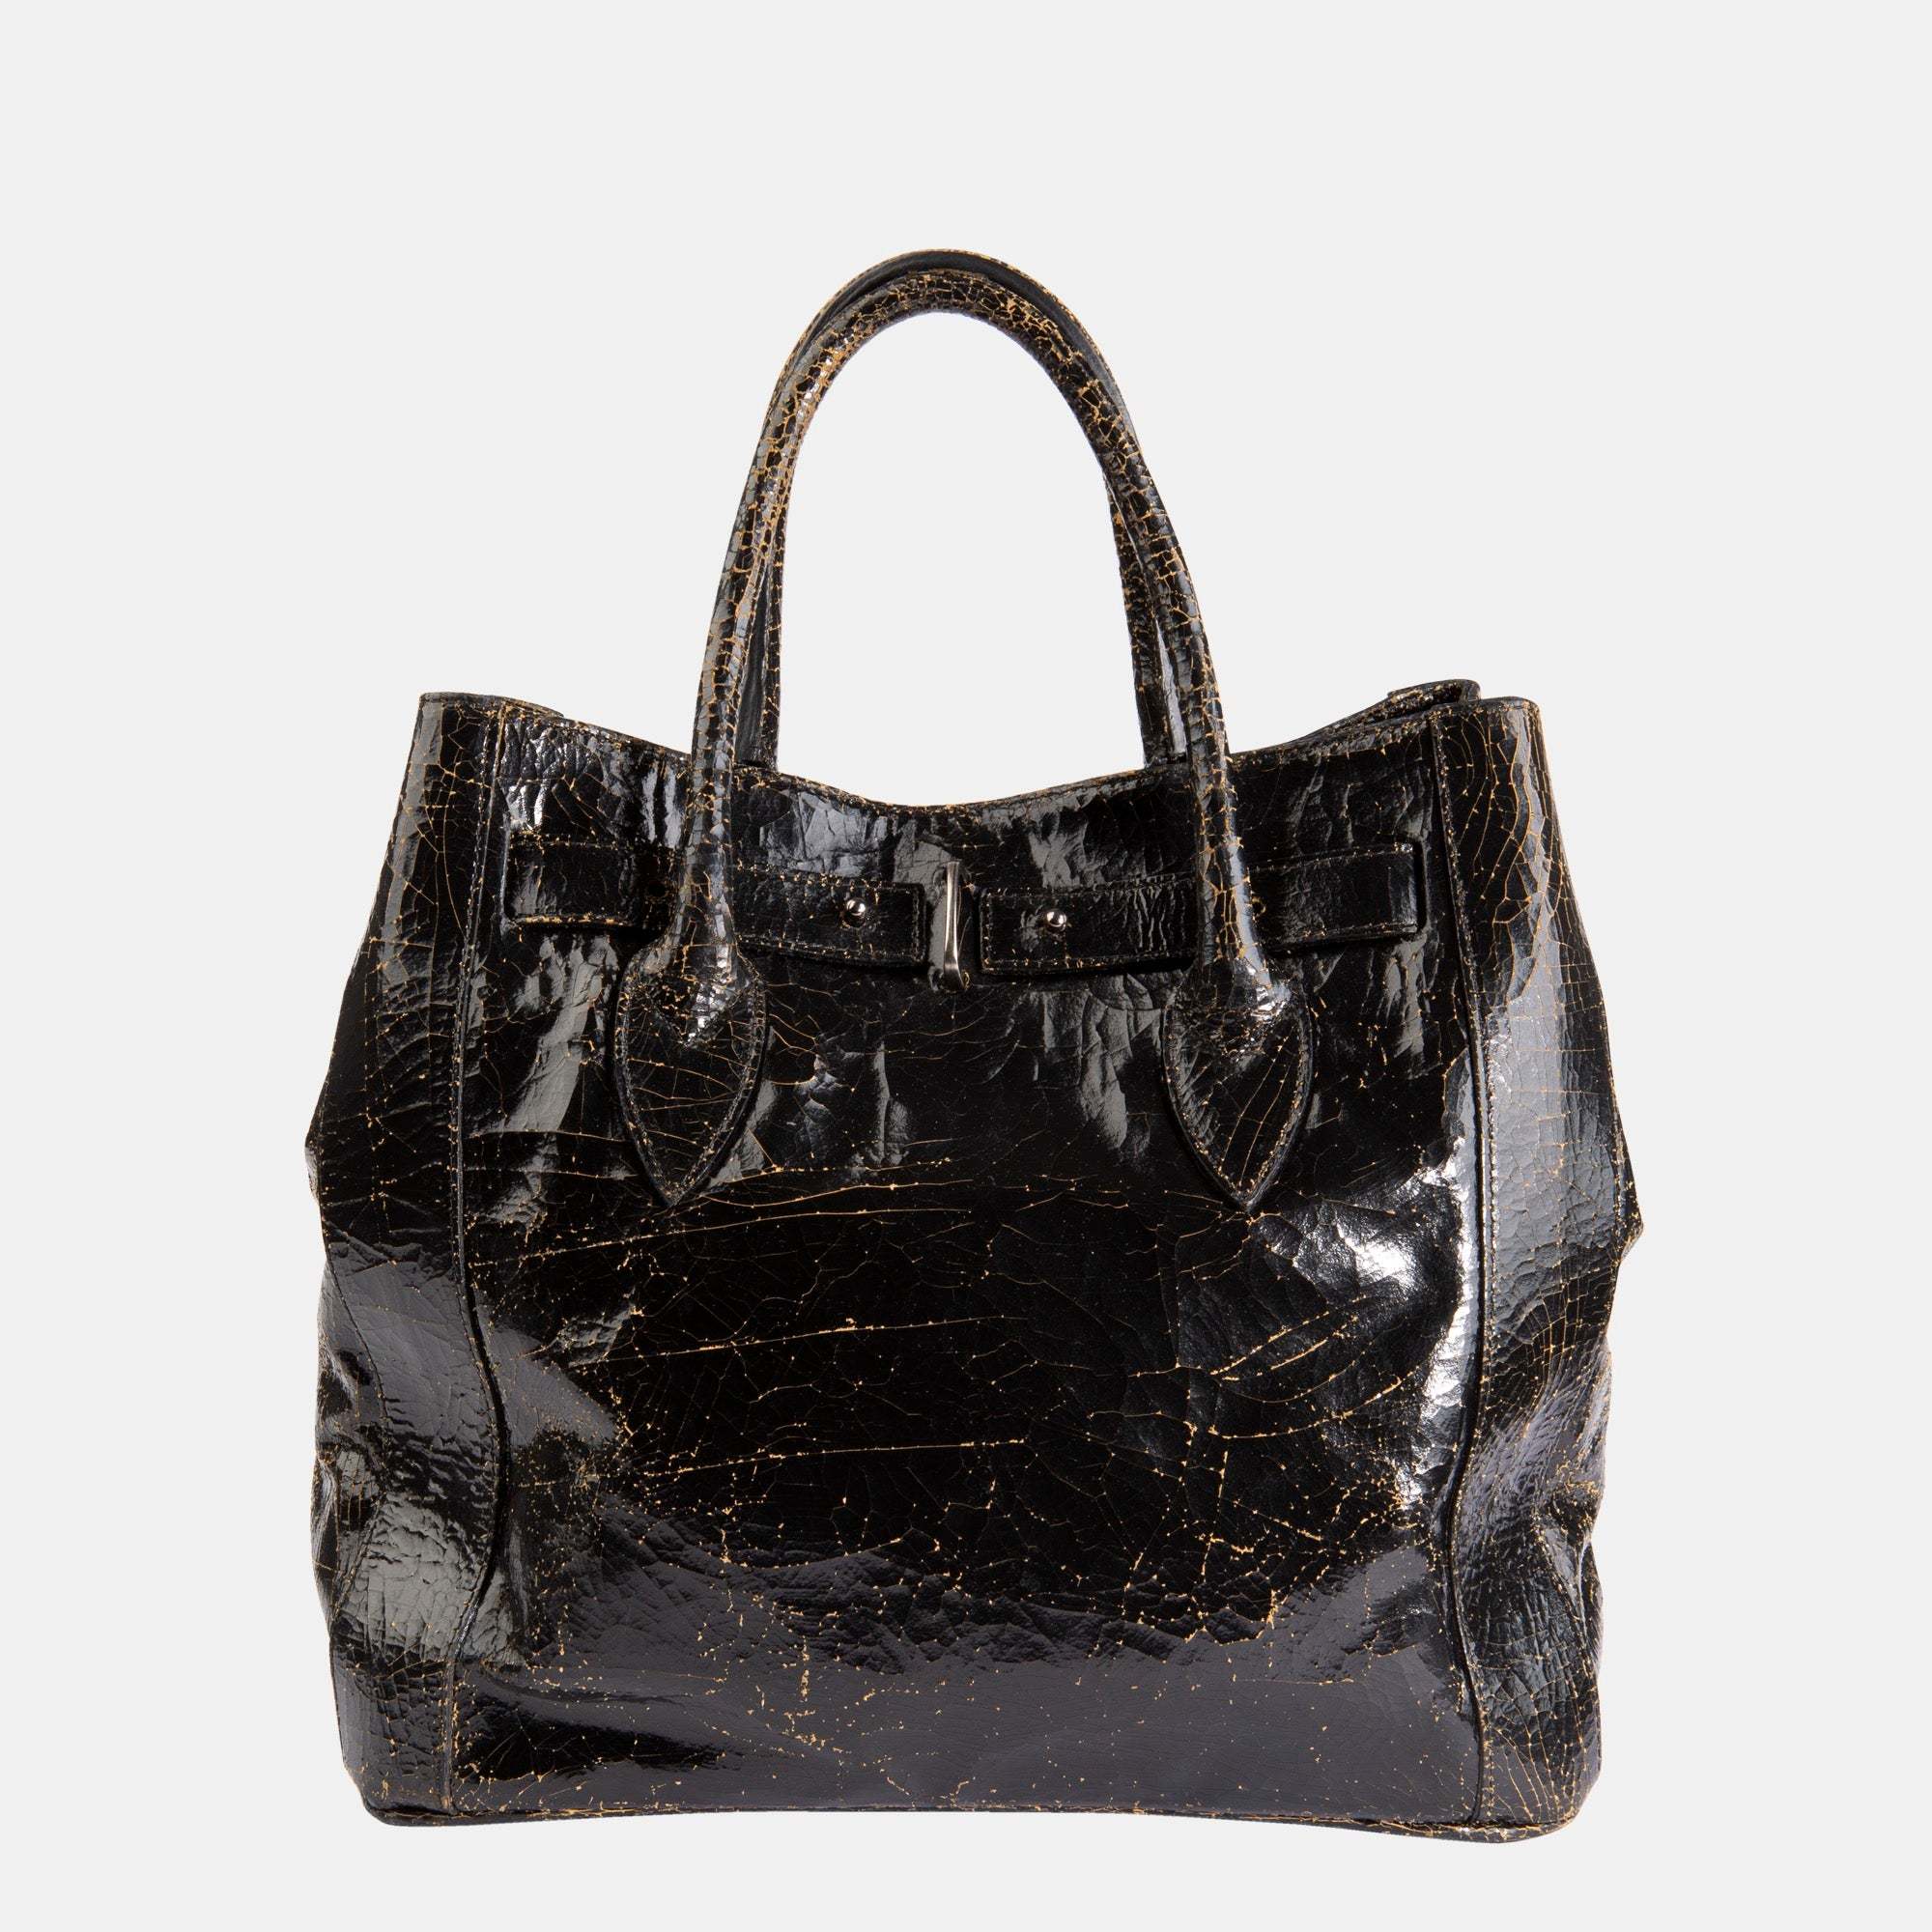 Luxury leather sustainable silk crossbody handbag tote